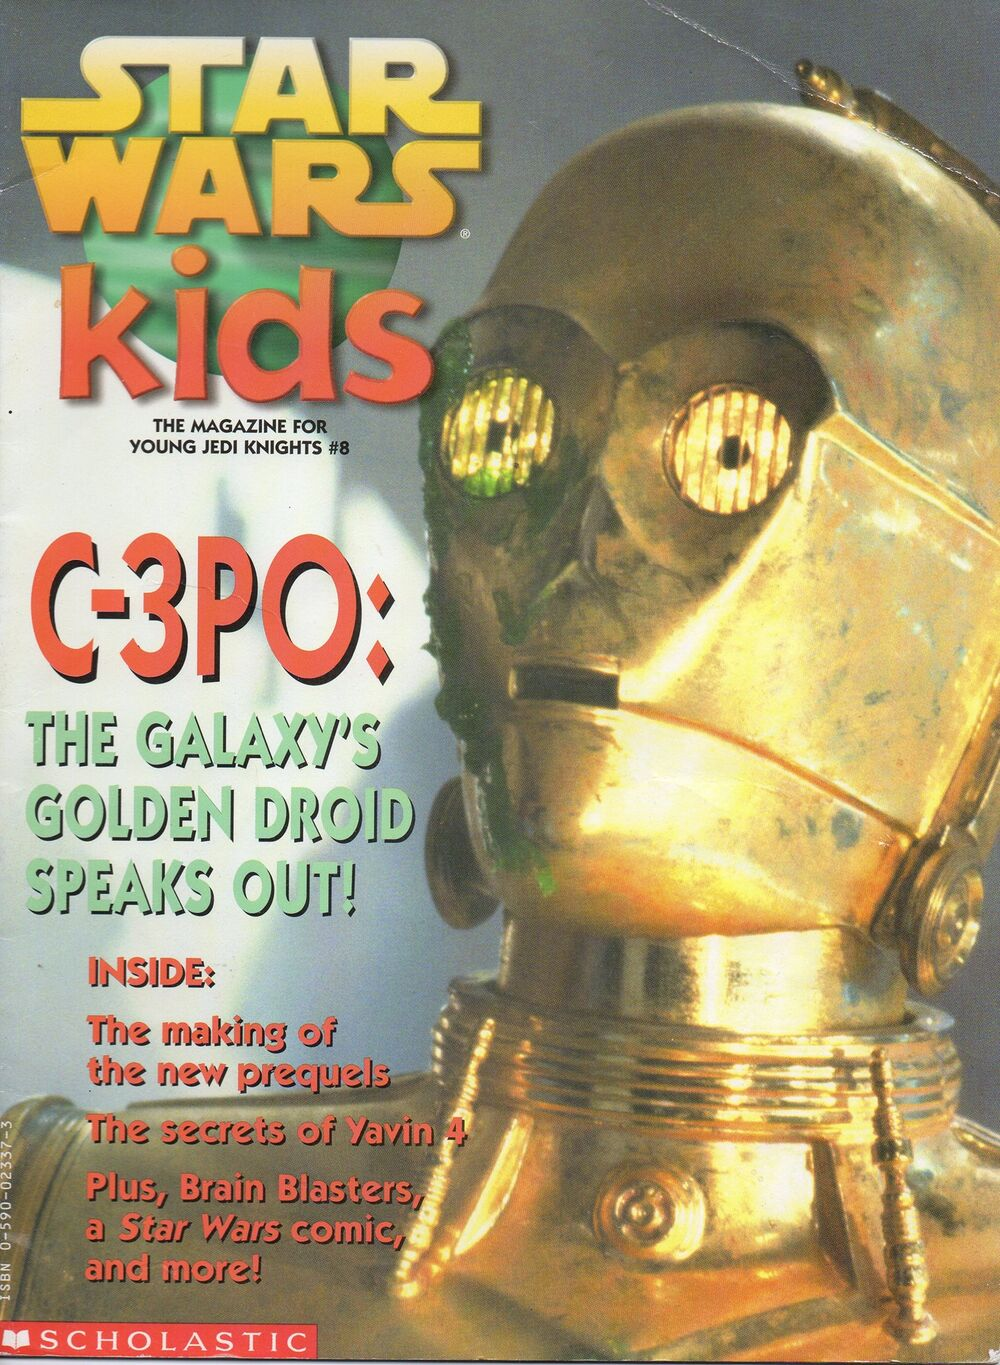 Star Wars Kids (Scholastic v1) 8